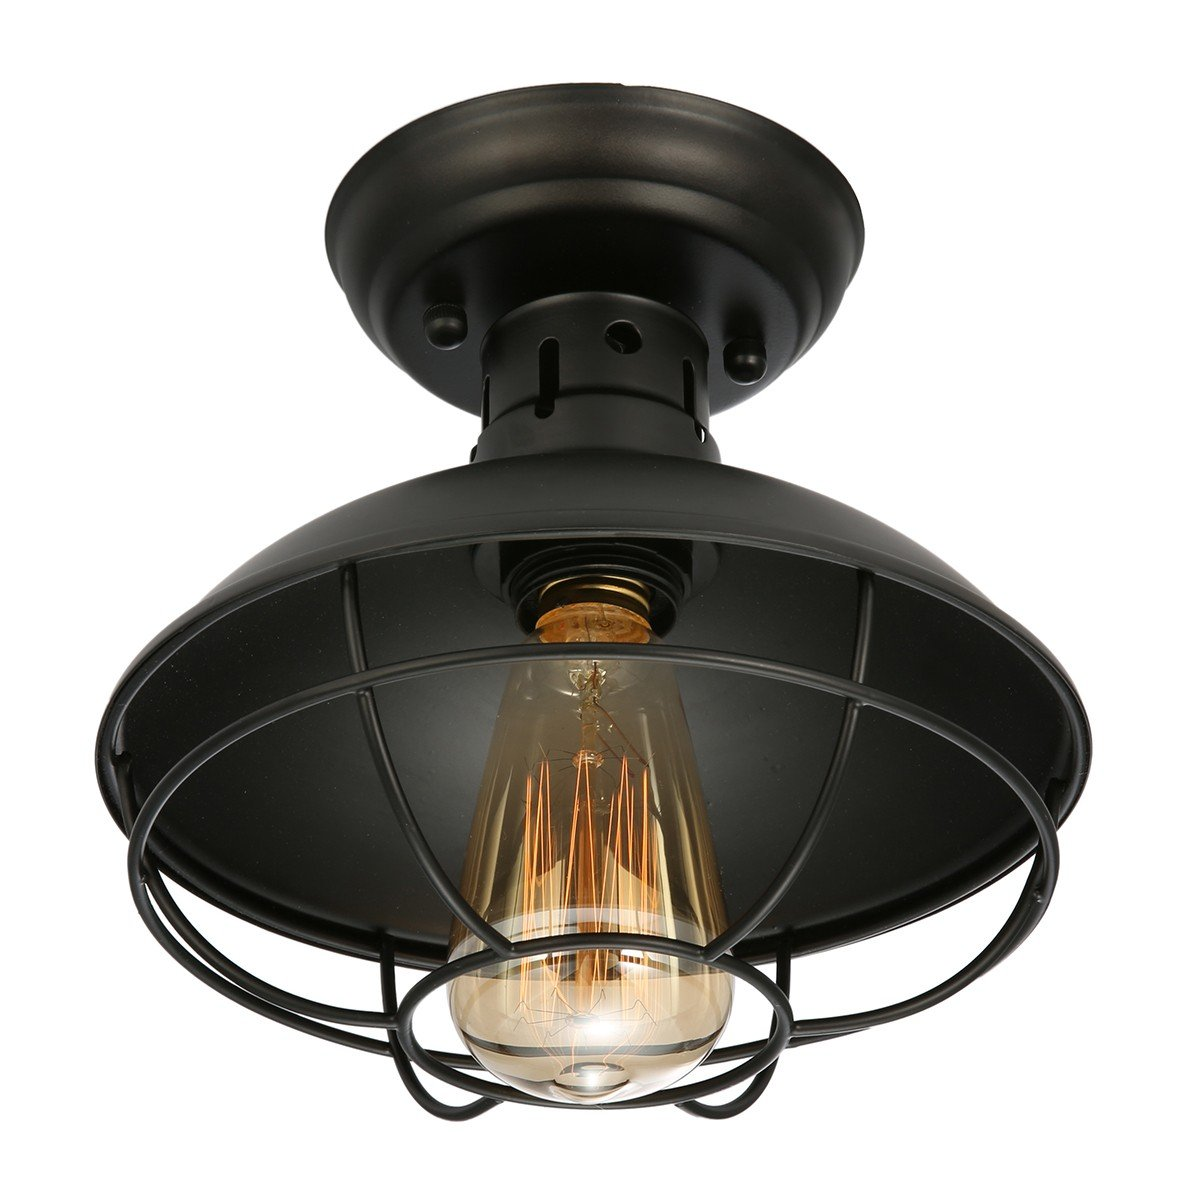 KingSo Industrial Metal Cage Ceiling Light, E26 Rustic Mini Semi Flush Mounted Pendant Lighting Dome/Bowl Shaped Lamp Fixture for Country Hallway Kitchen Garage Porch Bathroom by KINGSO (Image #1)